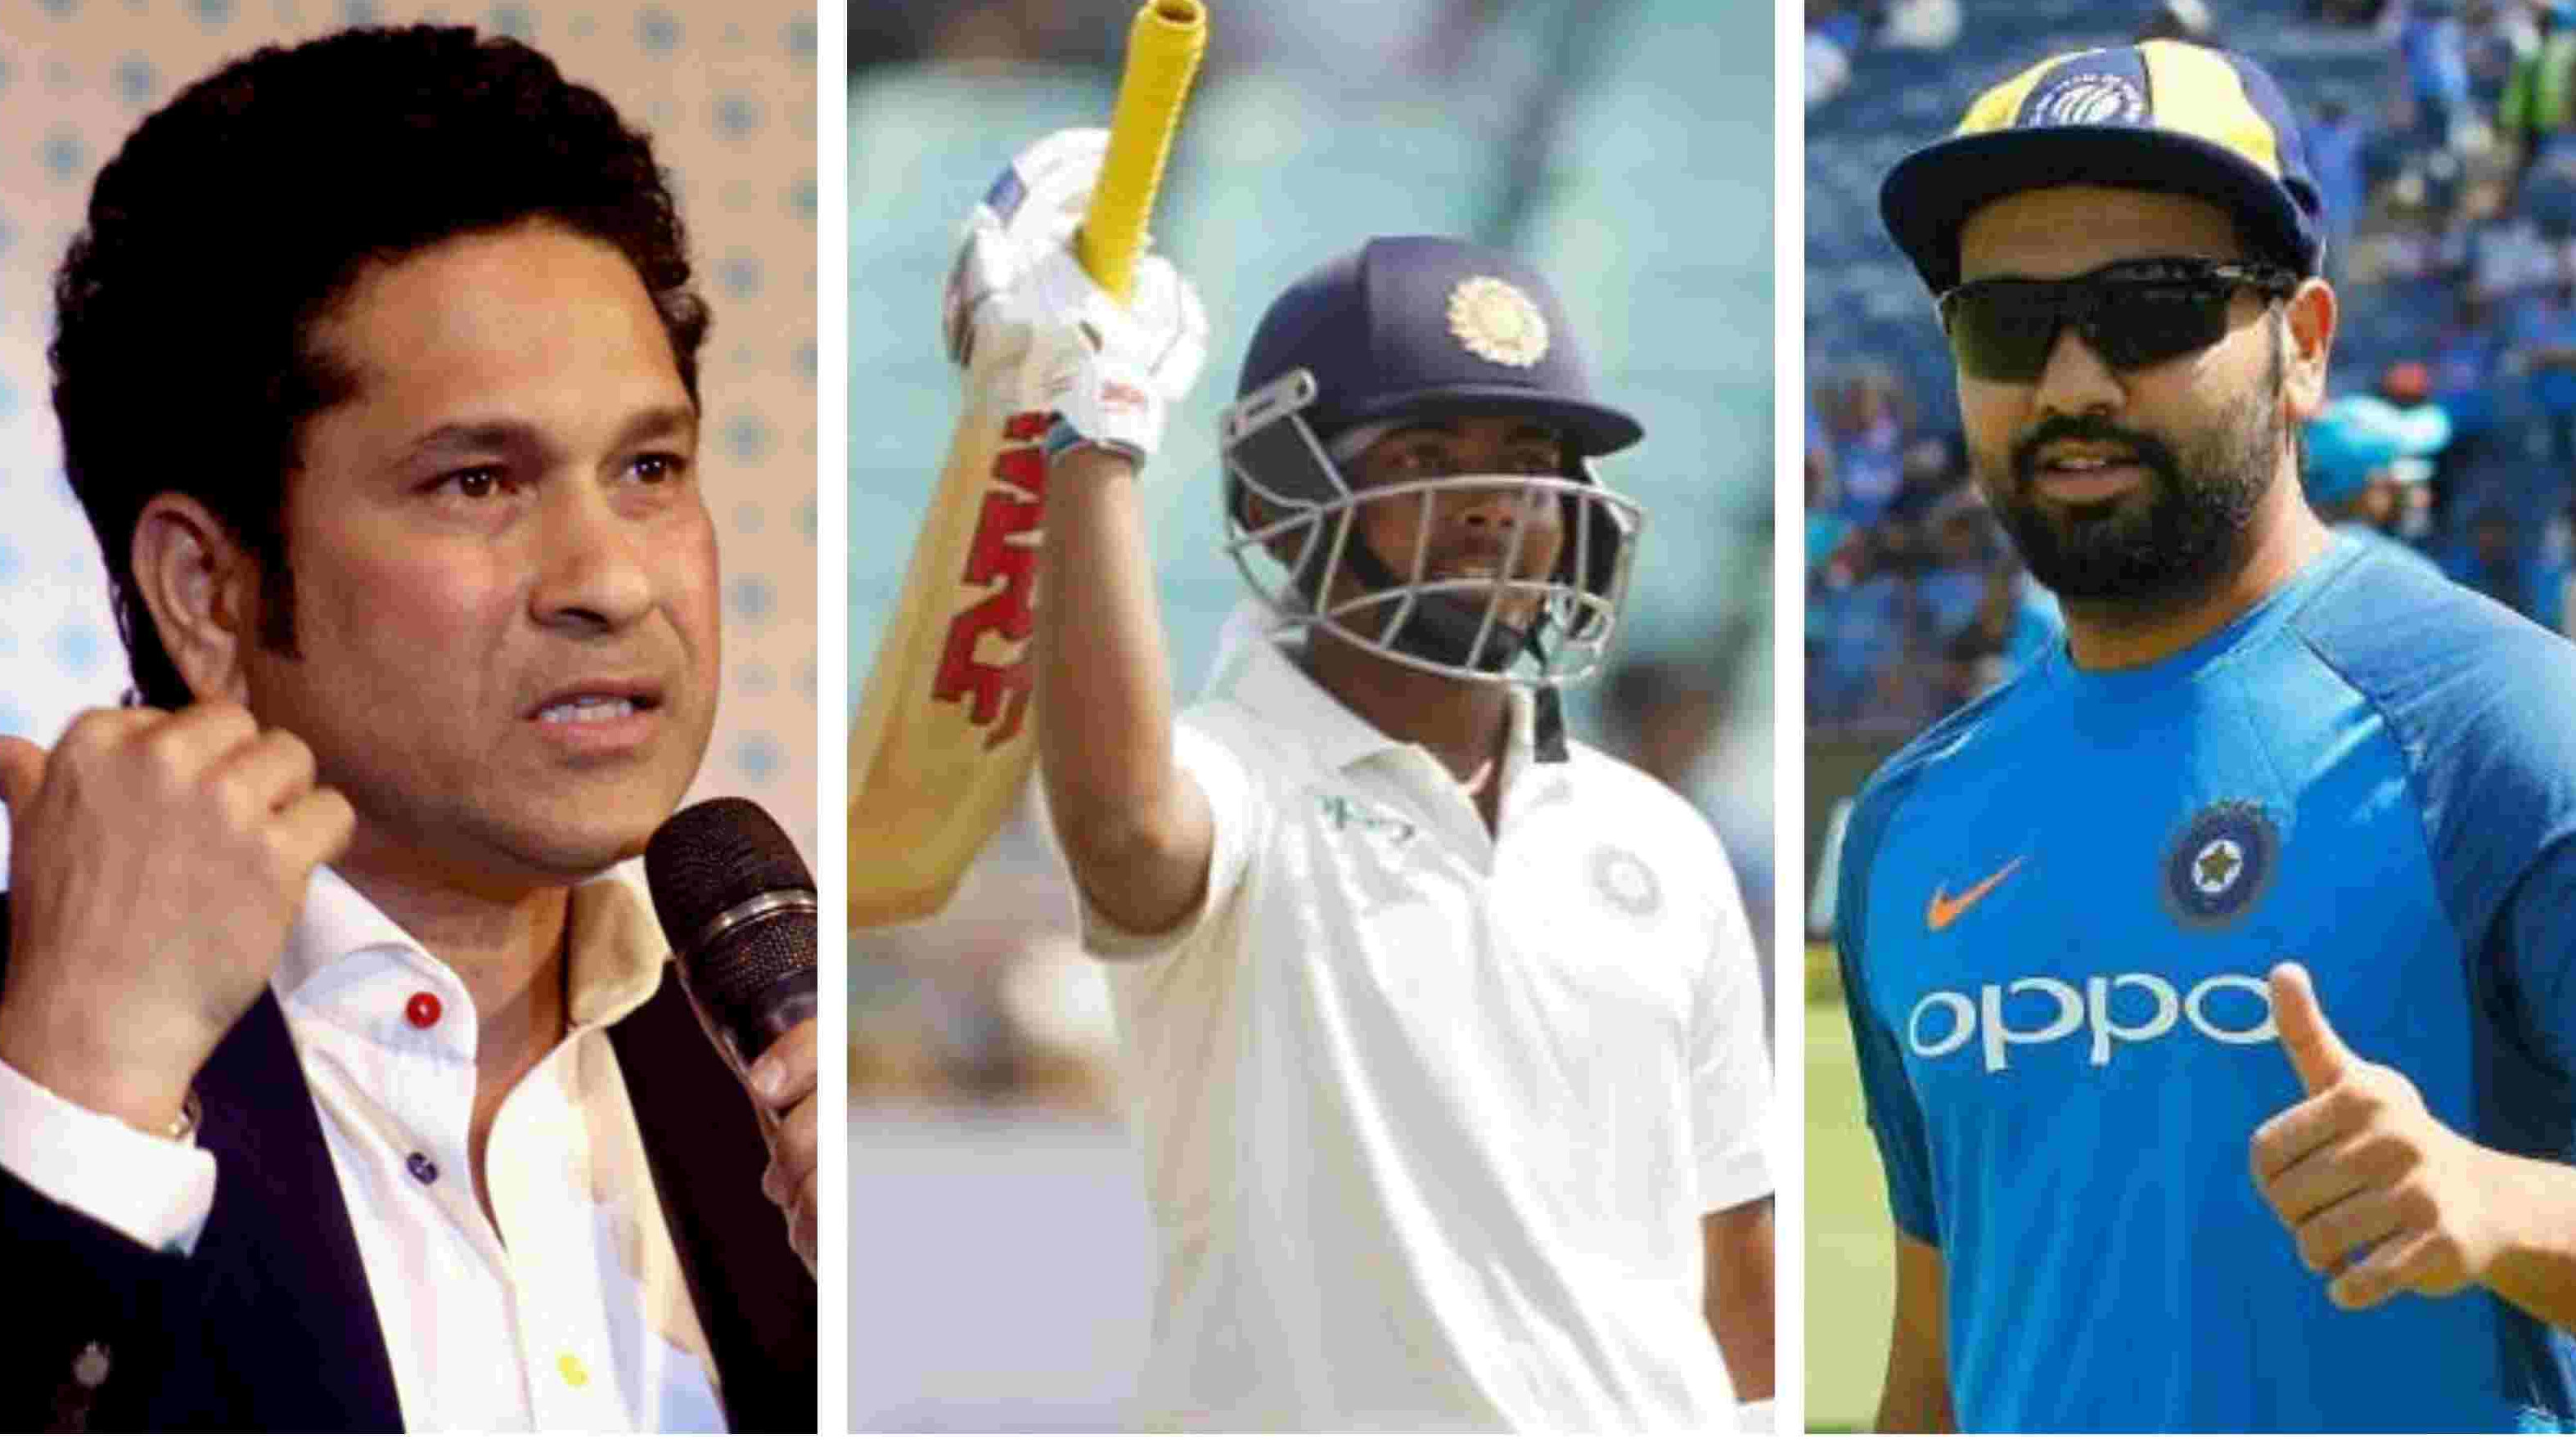 IND v WI 2018: Sachin Tendulkar, Rohit Sharma laud Prithvi Shaw for his maiden Test century on debut